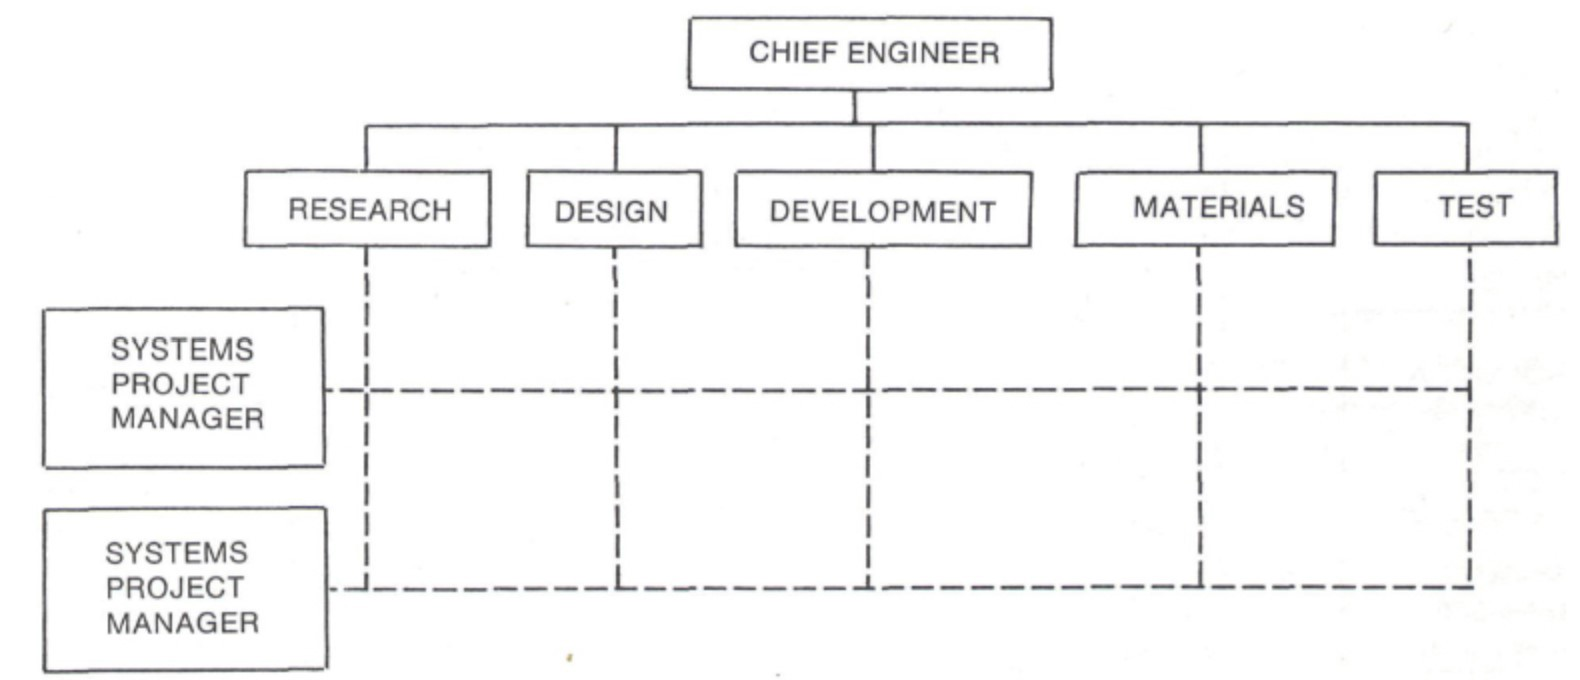 Image of an Engineering Matrix Structure